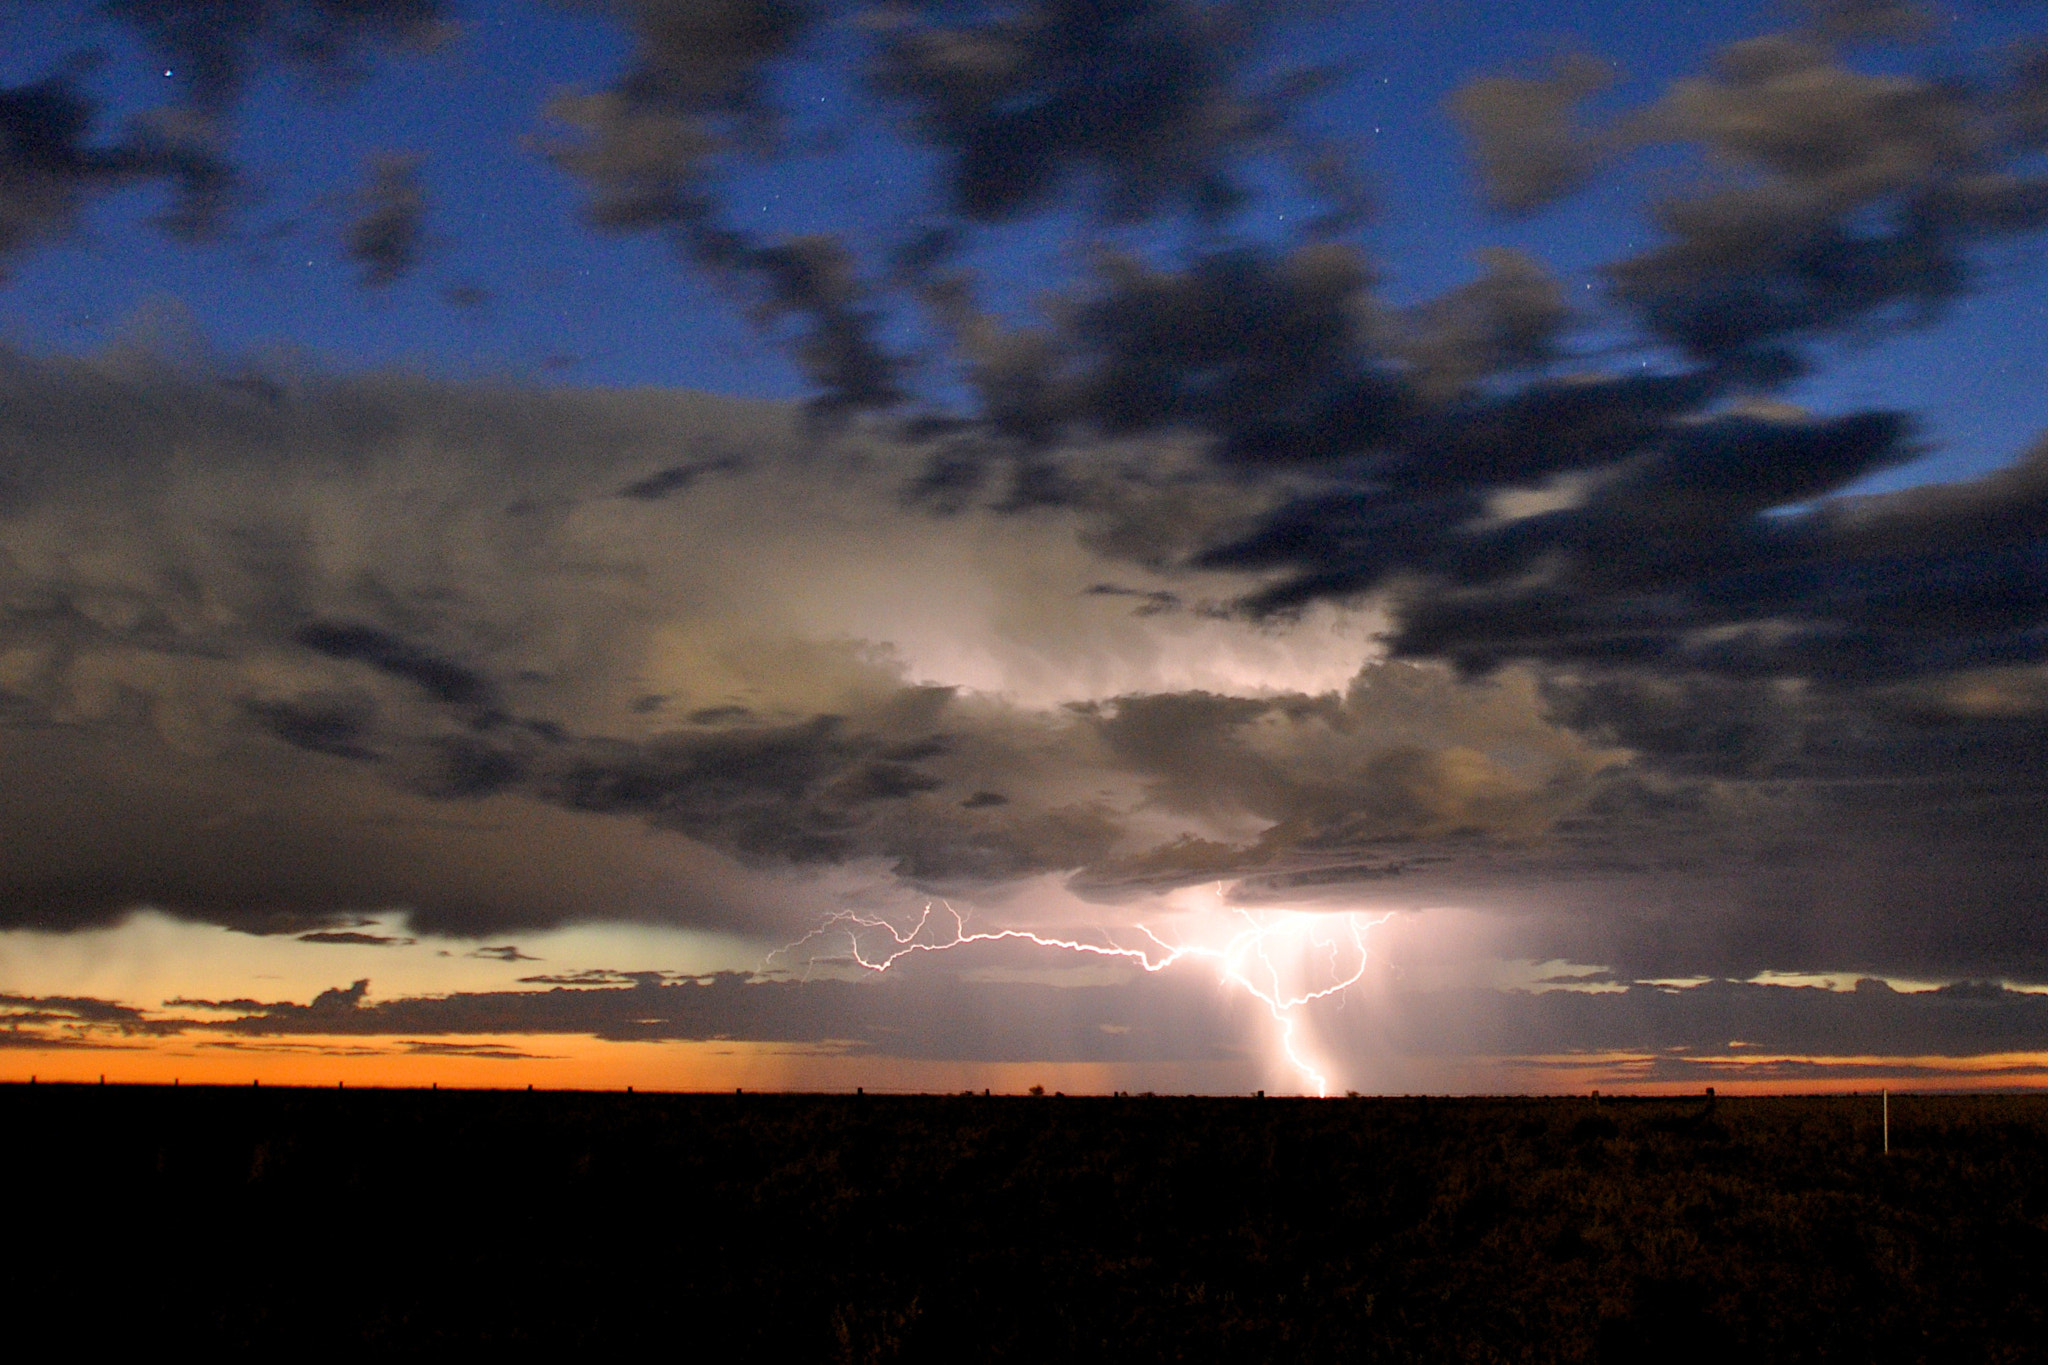 Photograph Storms and Lightning - 07 by David Freeman on 500px